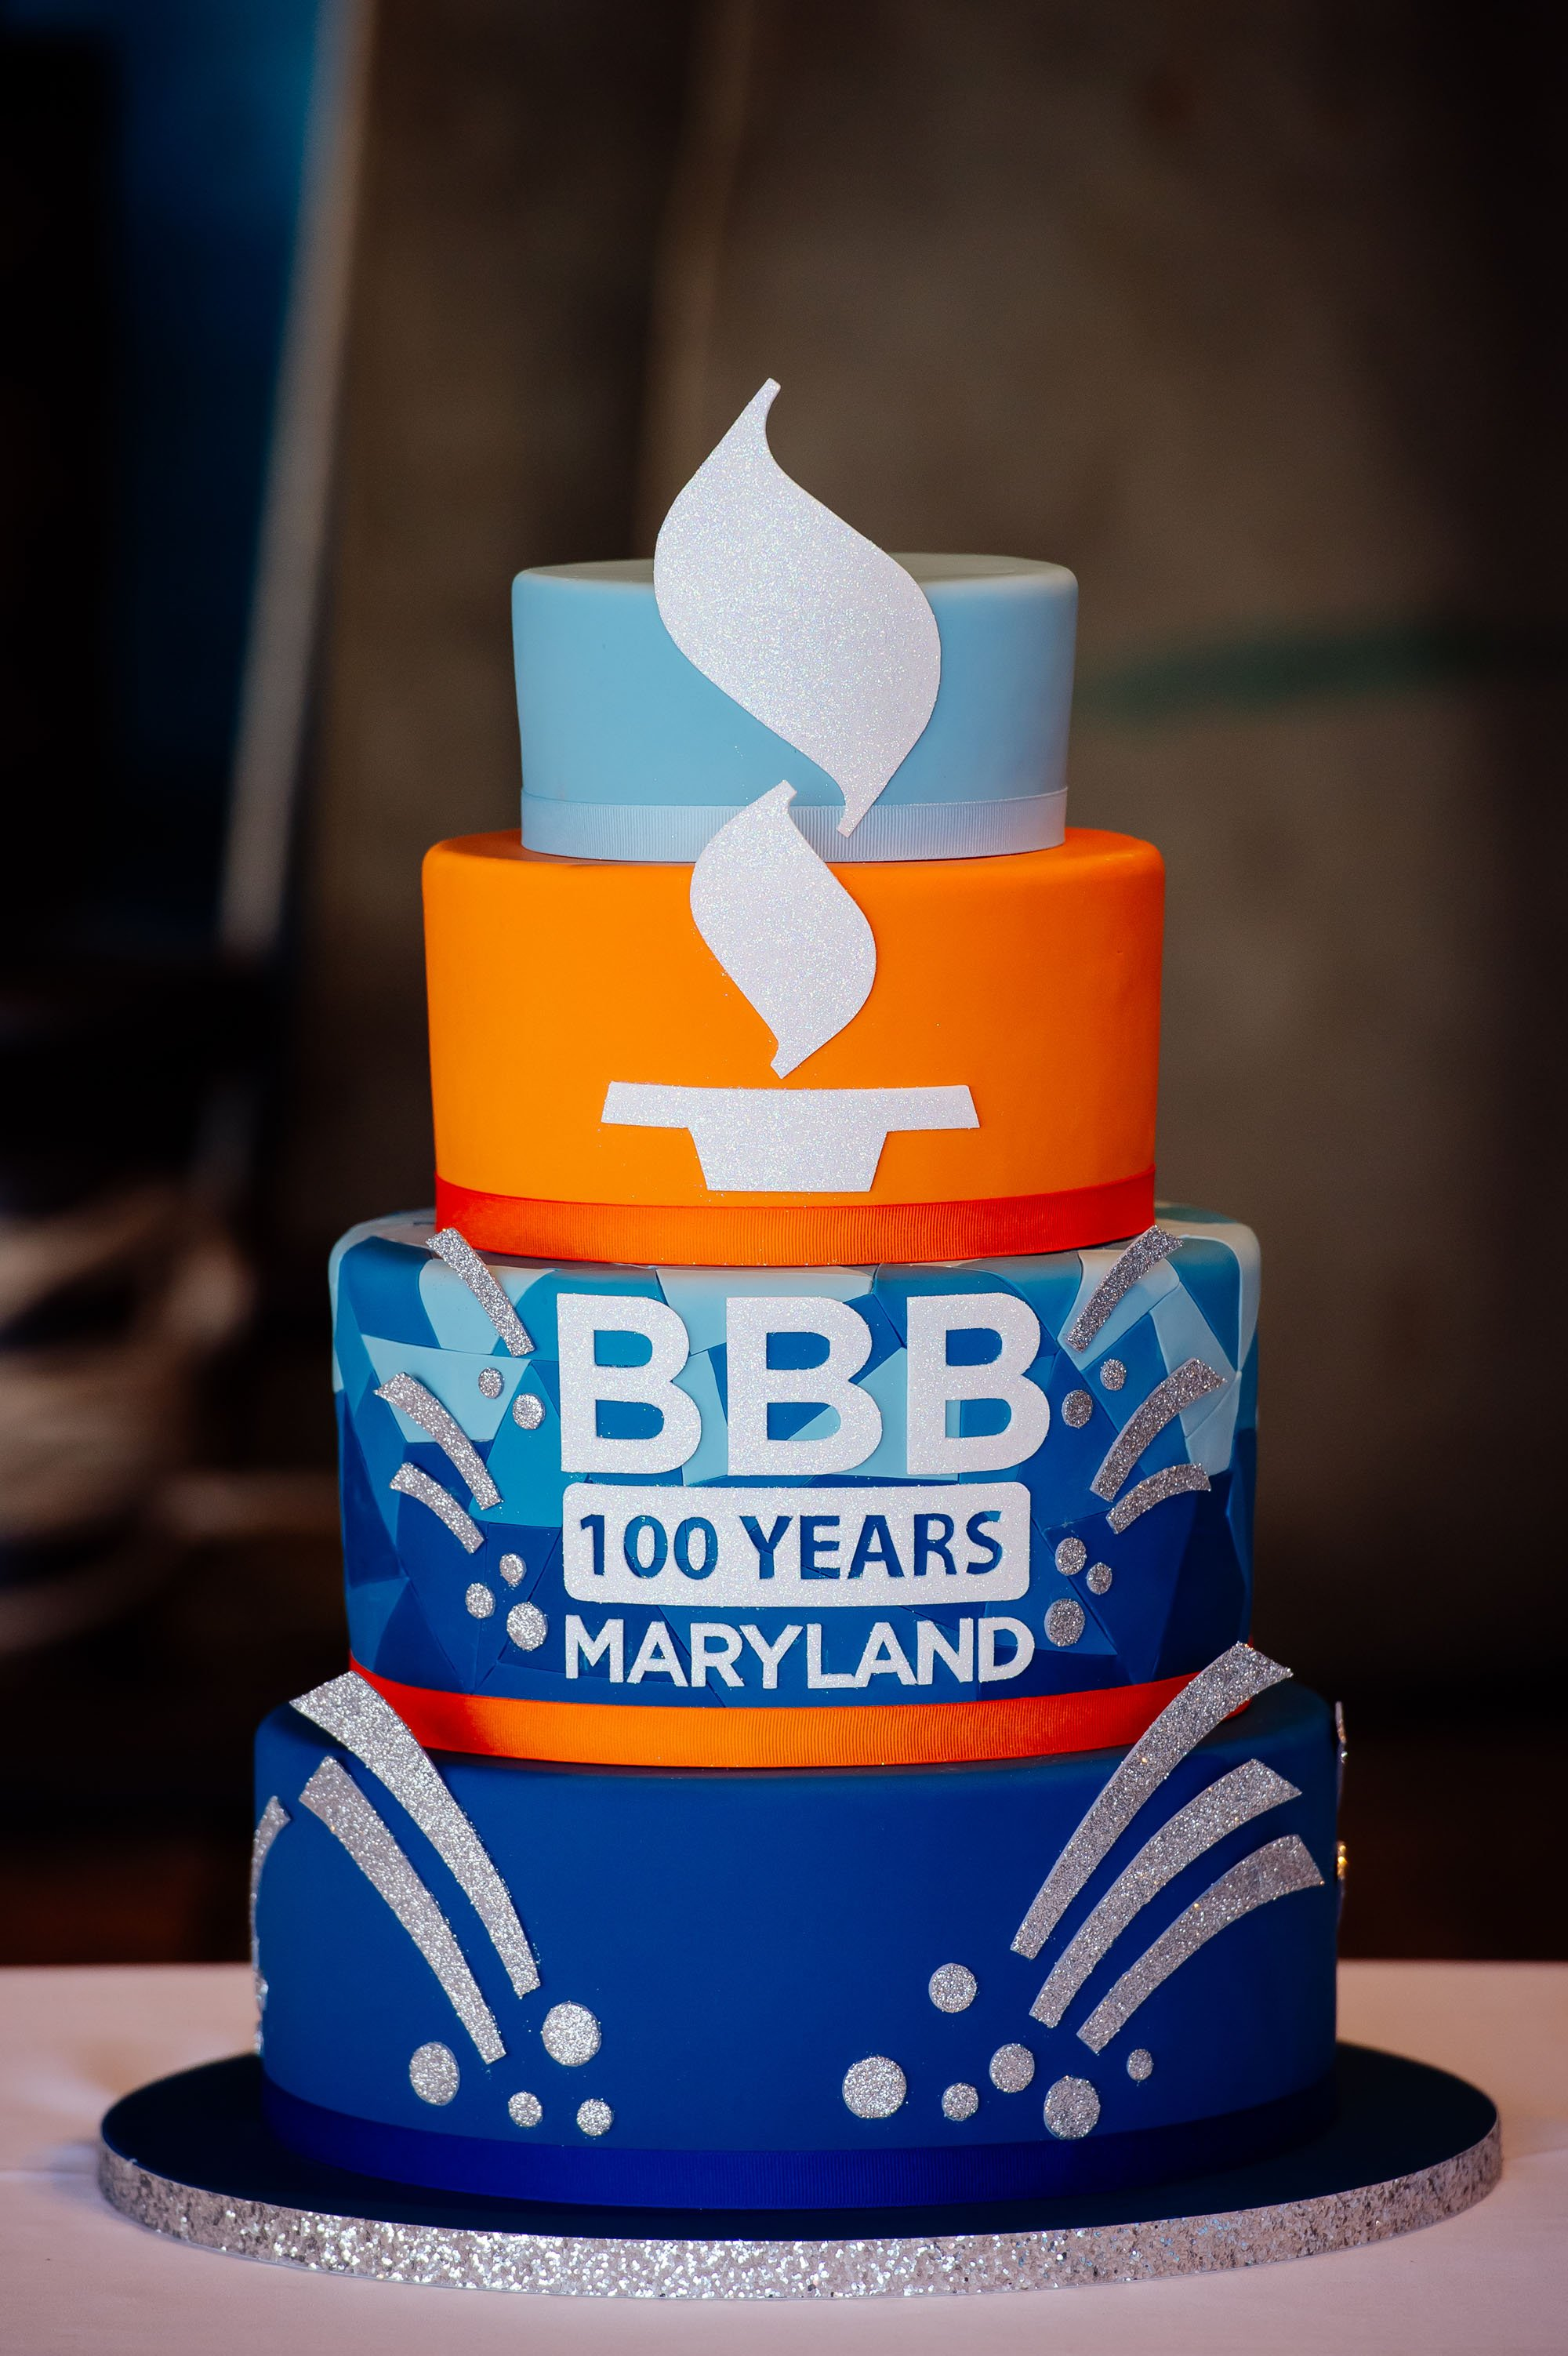 Bbbs 100th Birthday Cake Created By Charm City Cakes Baltimore Snap